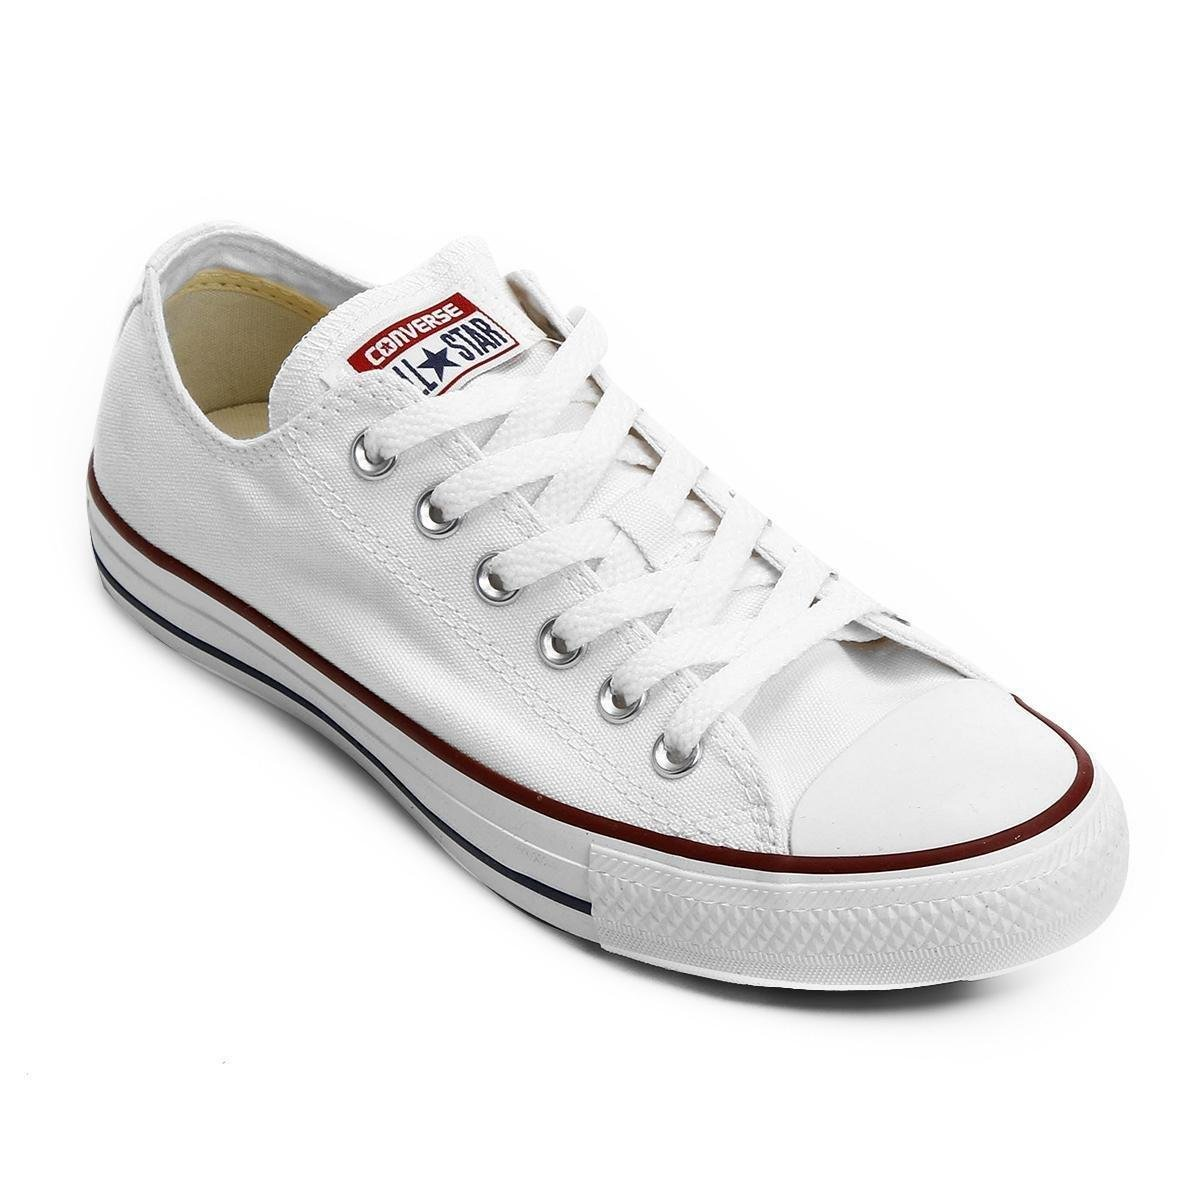 Tênis Converse All Star Ct As Core Ox - Off White e Vermelho ... 9a25c7cbd4ab1